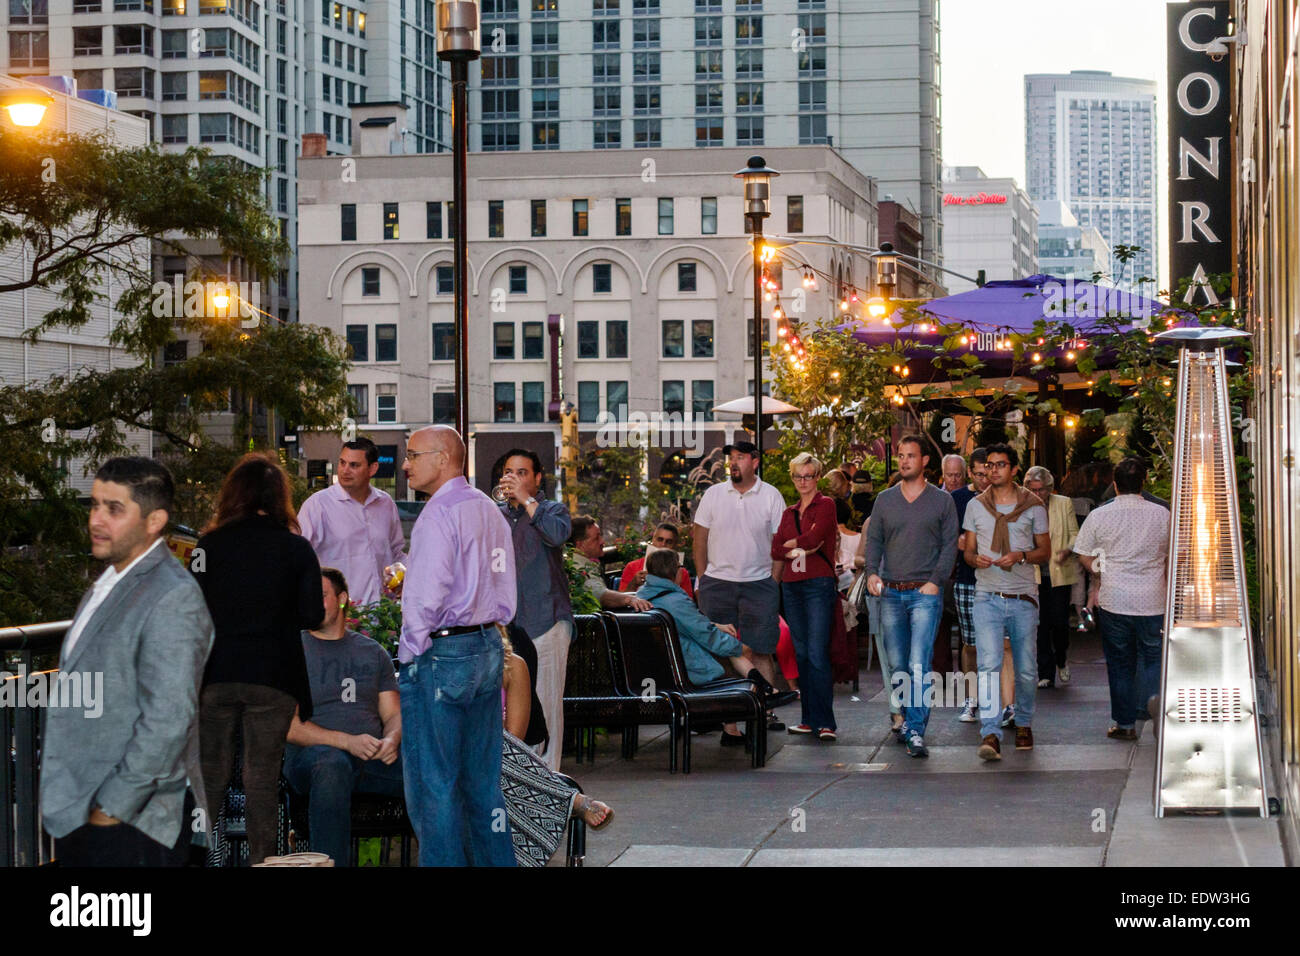 Chicago Illinois North River Michigan Avenue Magnificent Mile The Purple Pig restaurant entrance customers evening - Stock Image